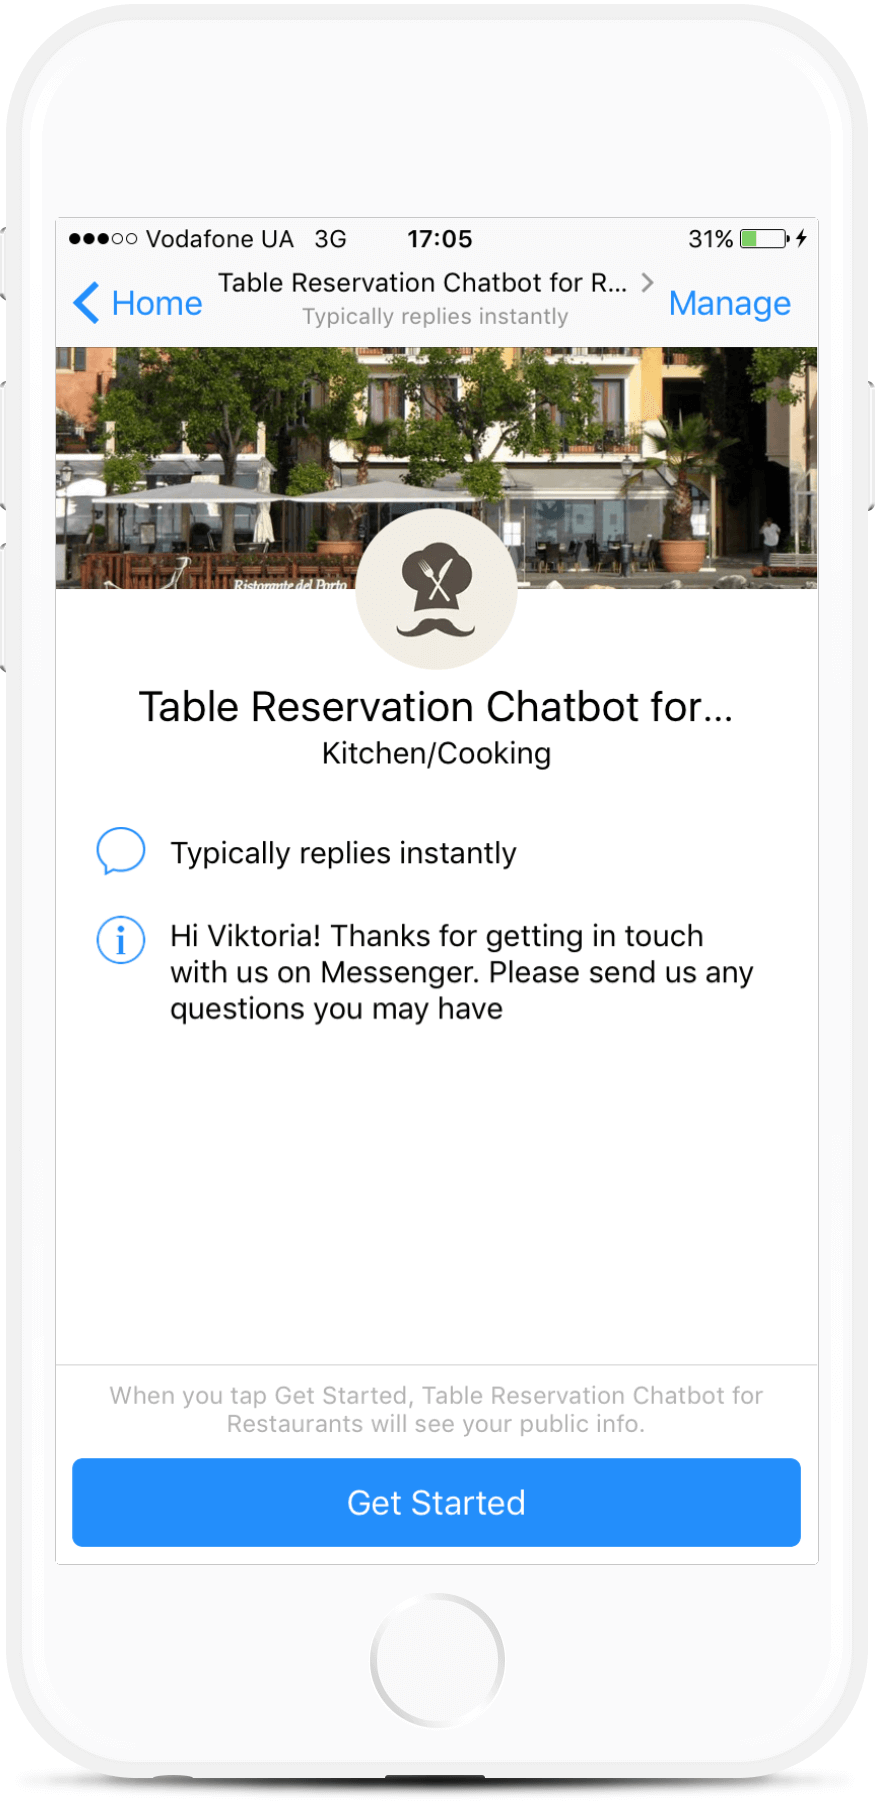 Restaurant Table Reservation Chatbot for Facebook Messenger